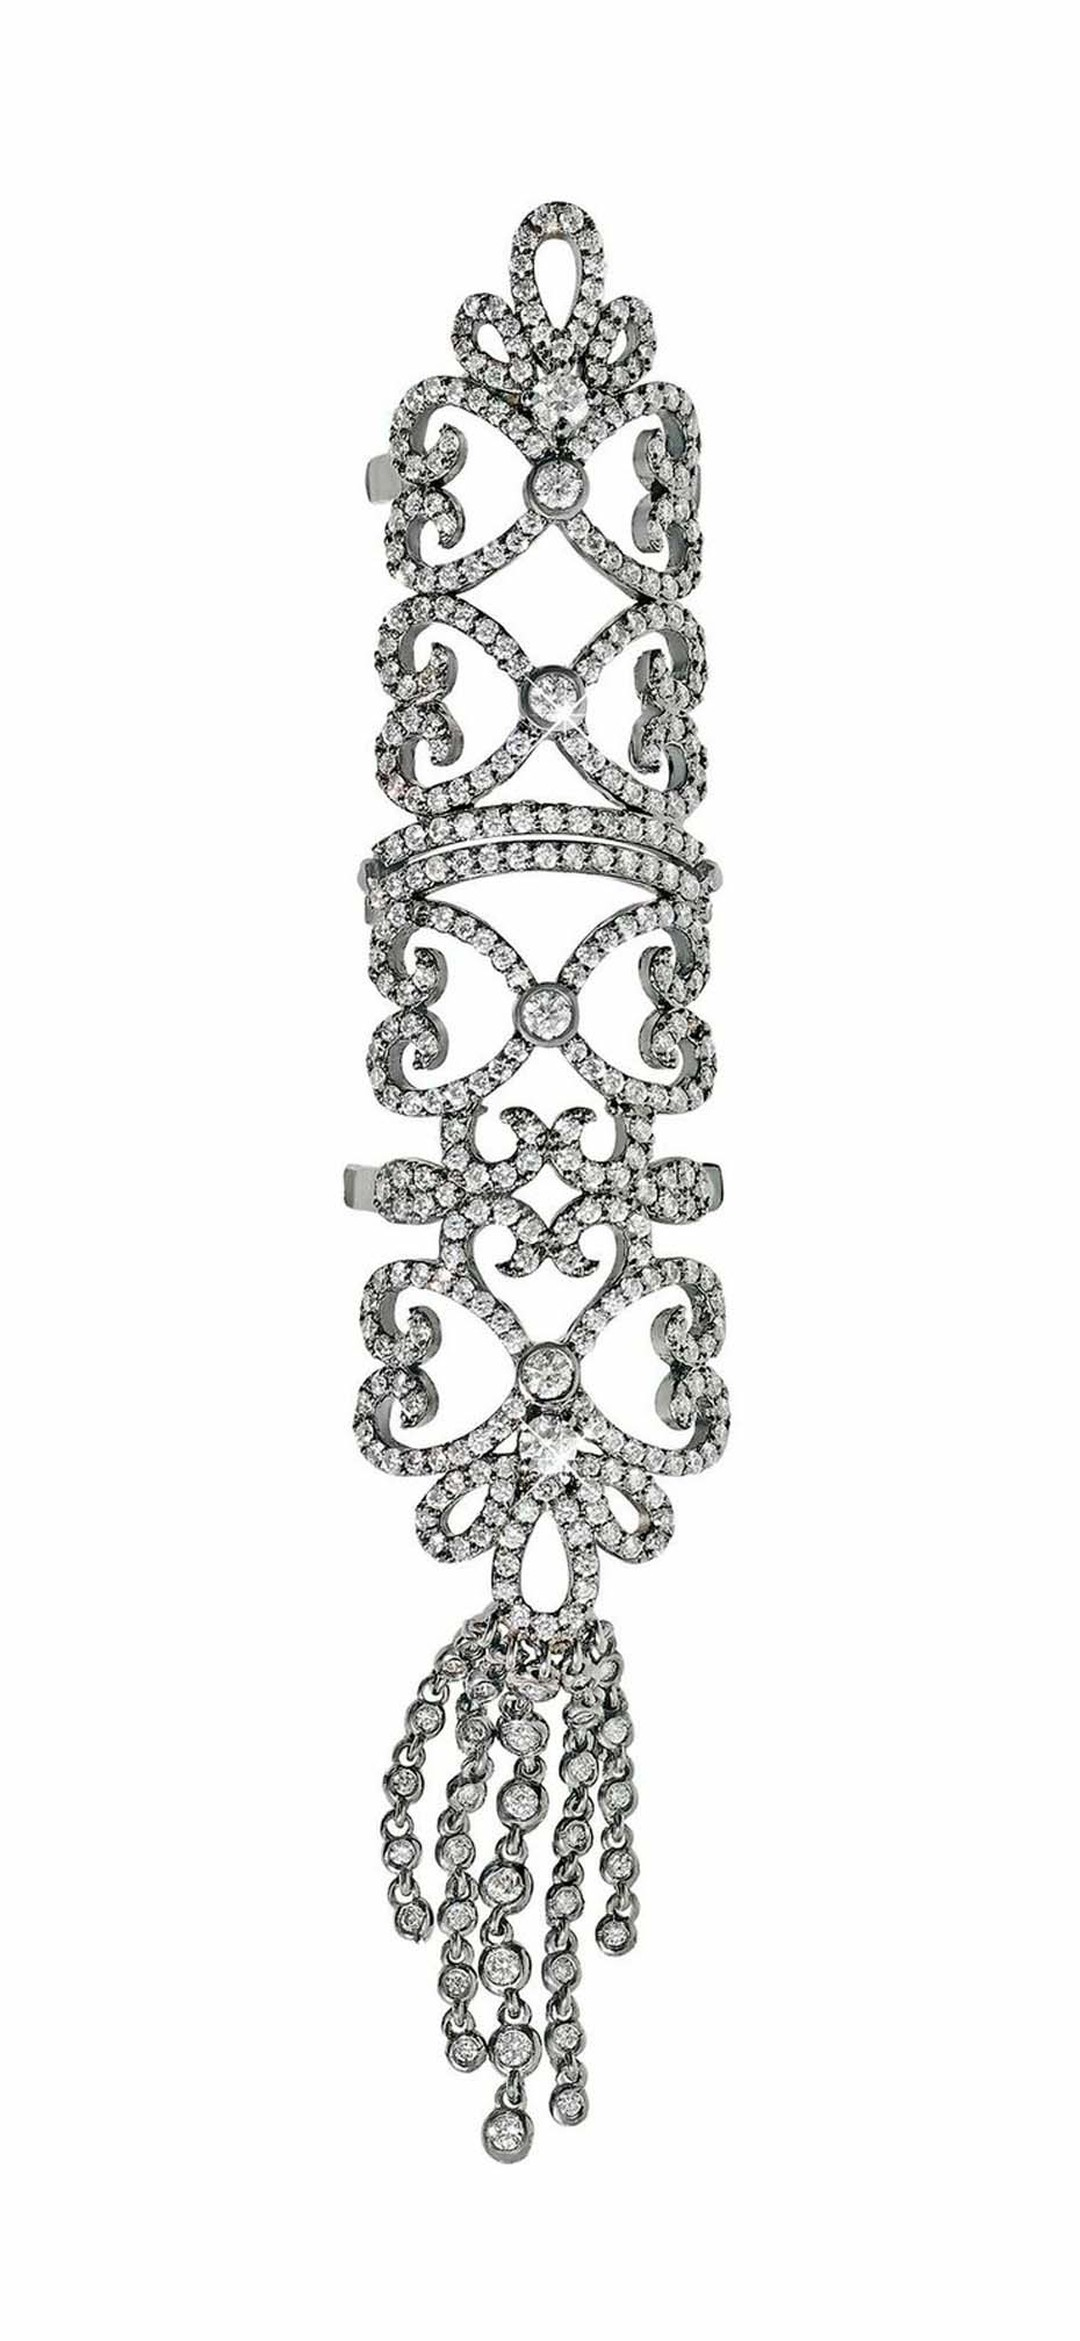 Noudar Jewels white gold Tassel ring with diamonds.